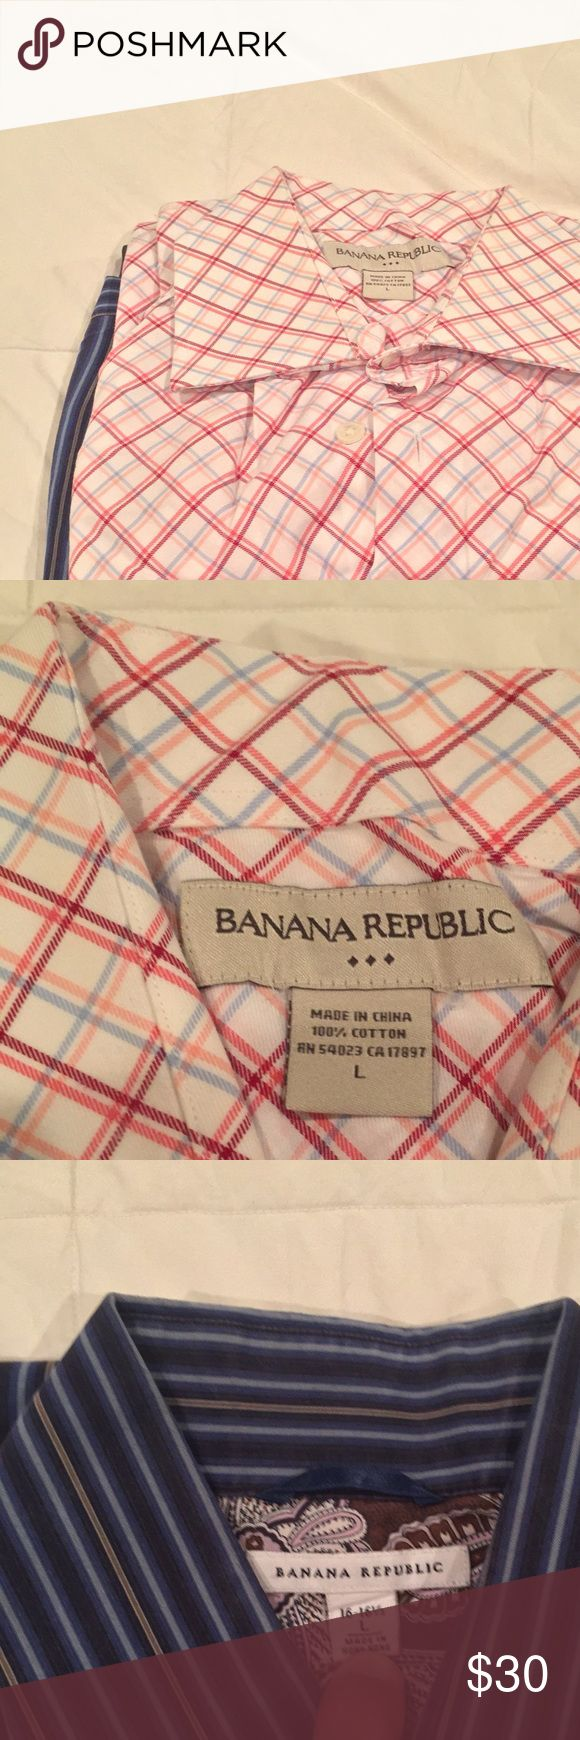 """Banana Republic Lot of 2 Dress Shirts 16 34 35 Offered is a lot of 2 BANANA REPUBLIC Dress Shirts. Both are pre-owned and have been worn, but are in excellent condition with minimal wear to the collars and sleeves. All have been freshly laundered and are ready to wear. Sizing on both is a 16 neck and 34/35 sleeve, however refer to the photos for exact sizing on all shirts. All collar stays are present on the shirts. I am 6' 00"""" and weigh 185 lbs and both of these shirts fit me well. I am a…"""